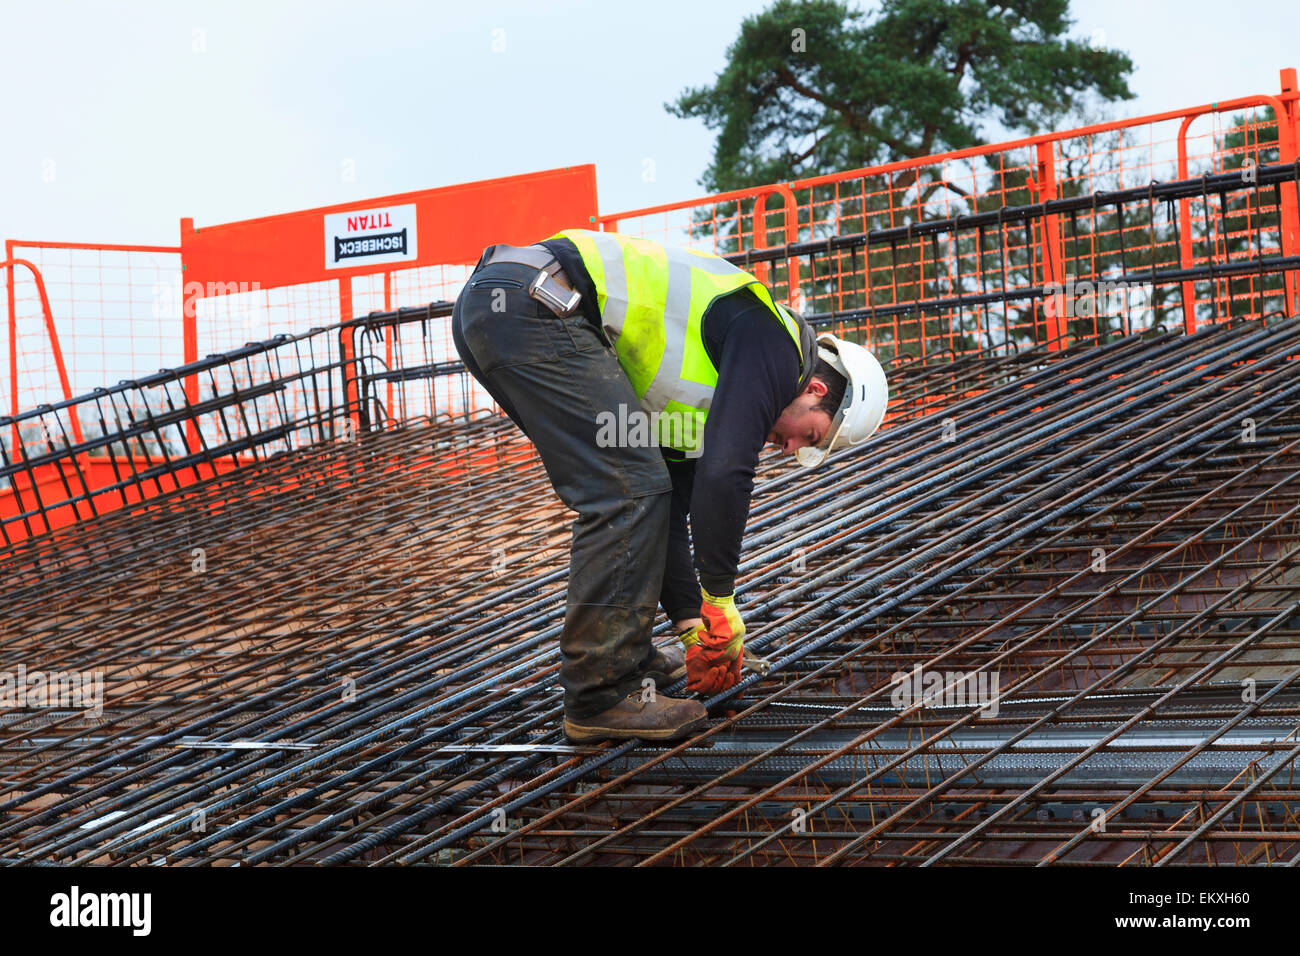 Construction worker tying up reinforcing bars prior to